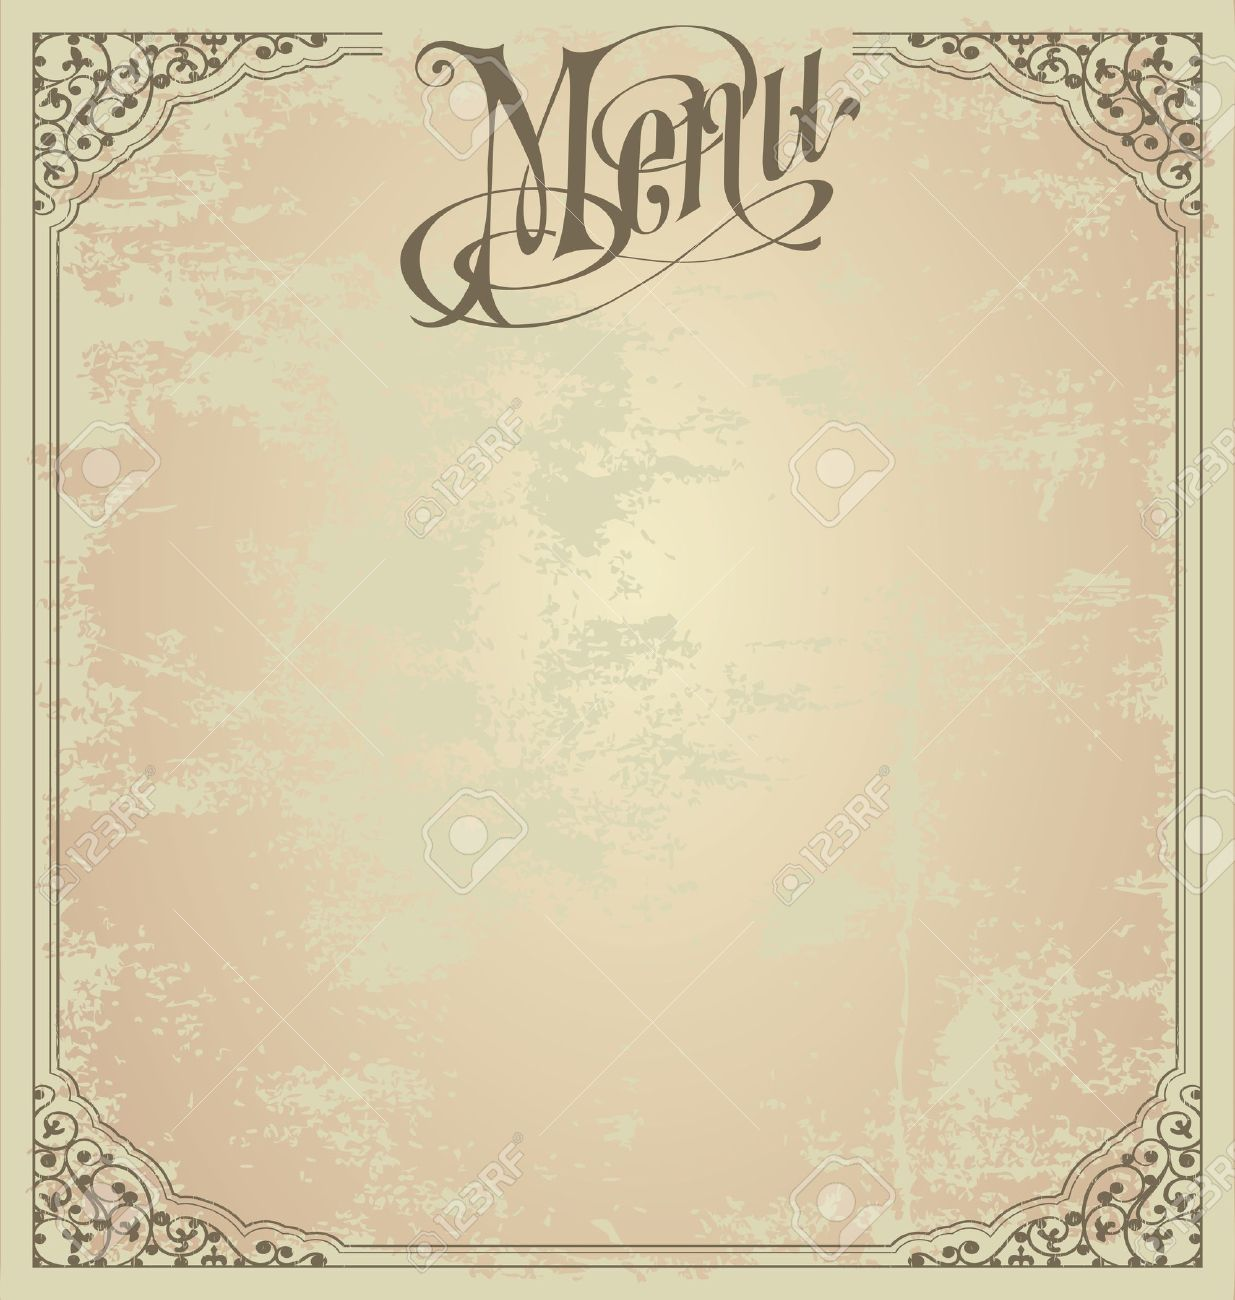 Menu Modele De Conception Clip Art Libres De Droits Vecteurs Et Illustration Image 18028471